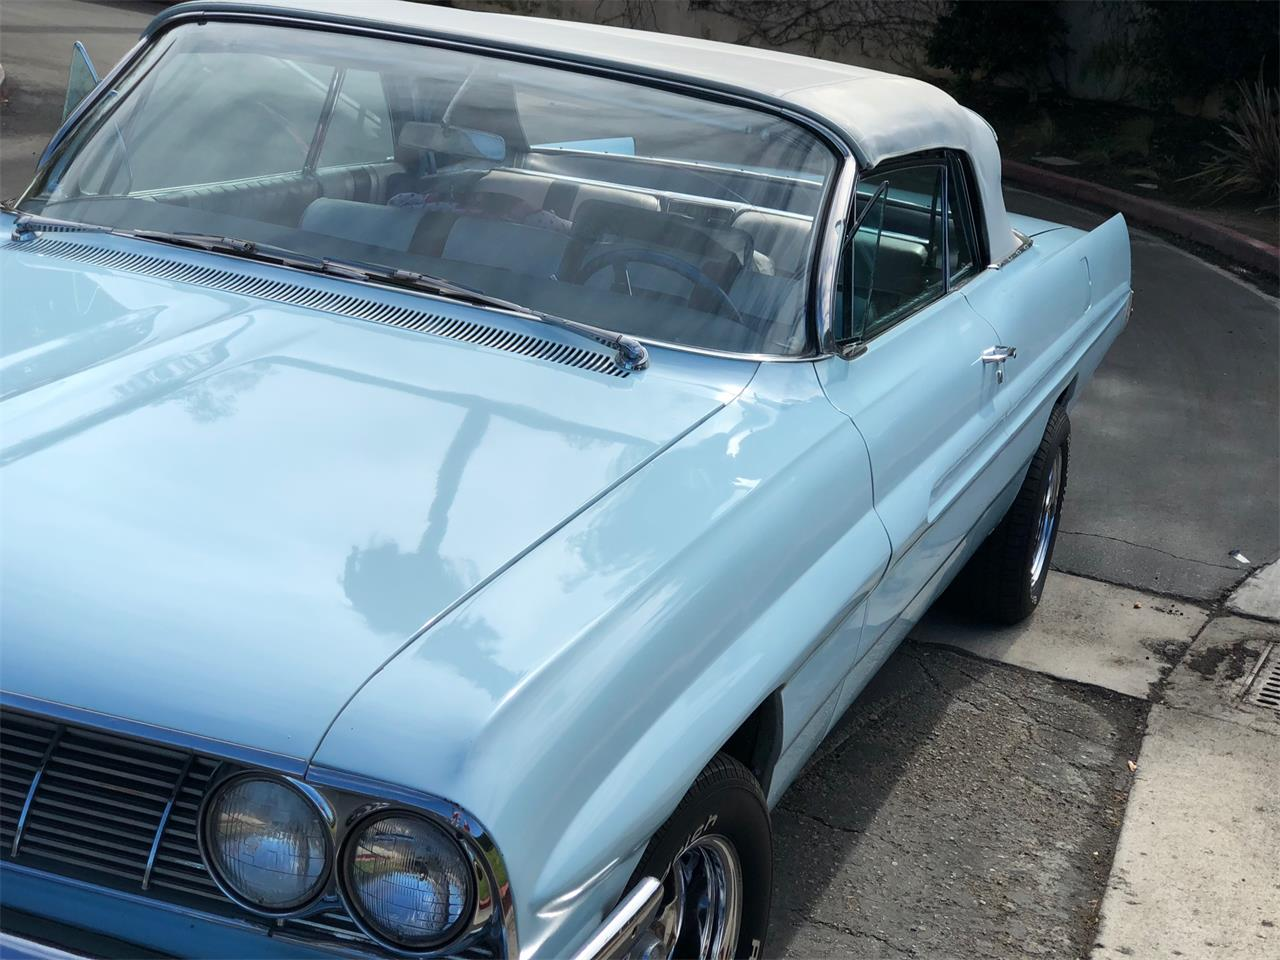 Large Picture of '61 Pontiac Bonneville located in California Offered by a Private Seller - ASQZ